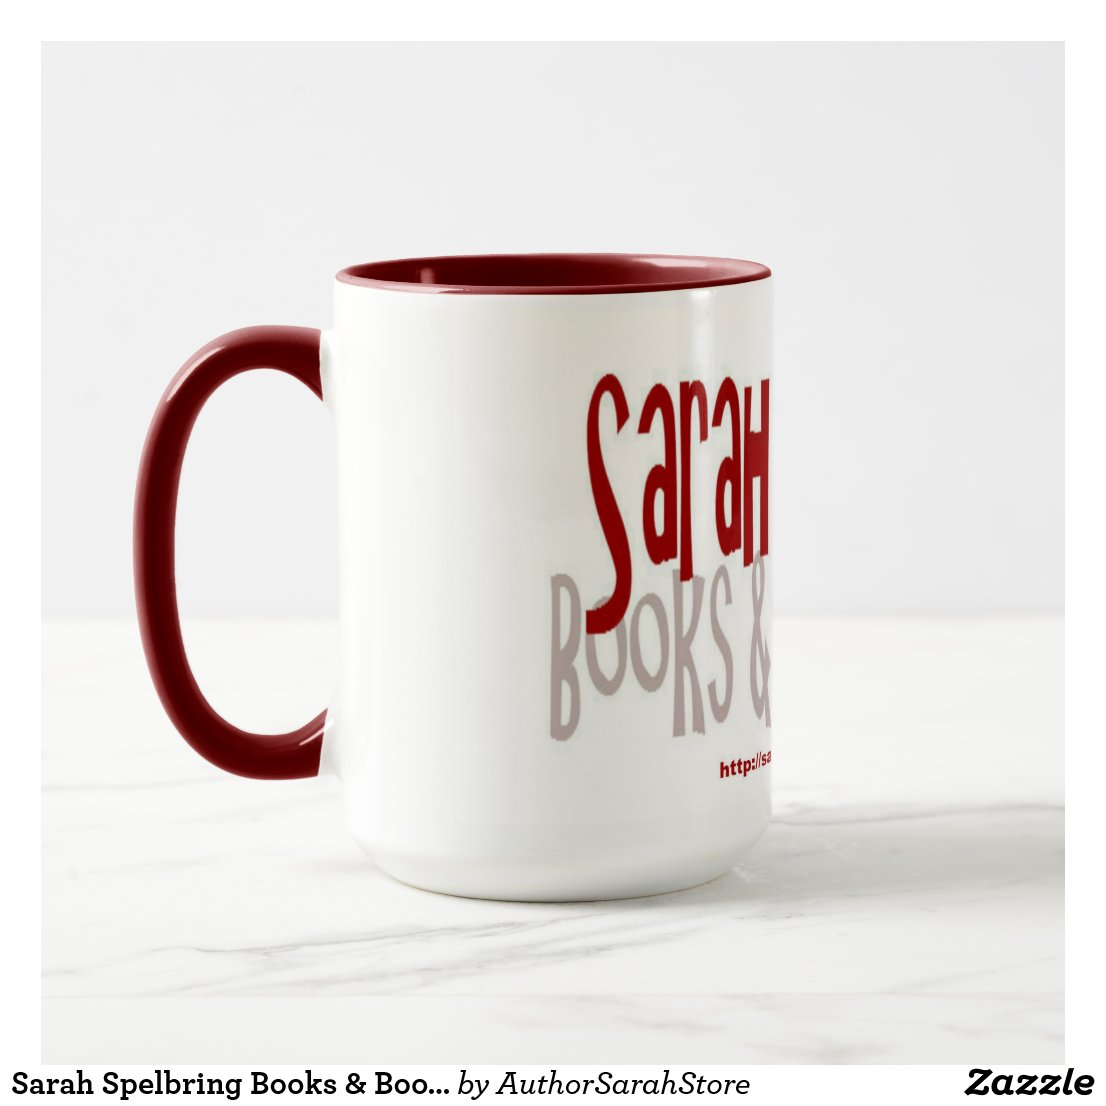 Sarah Spelbring Books & Book Reviews Mug (Red)